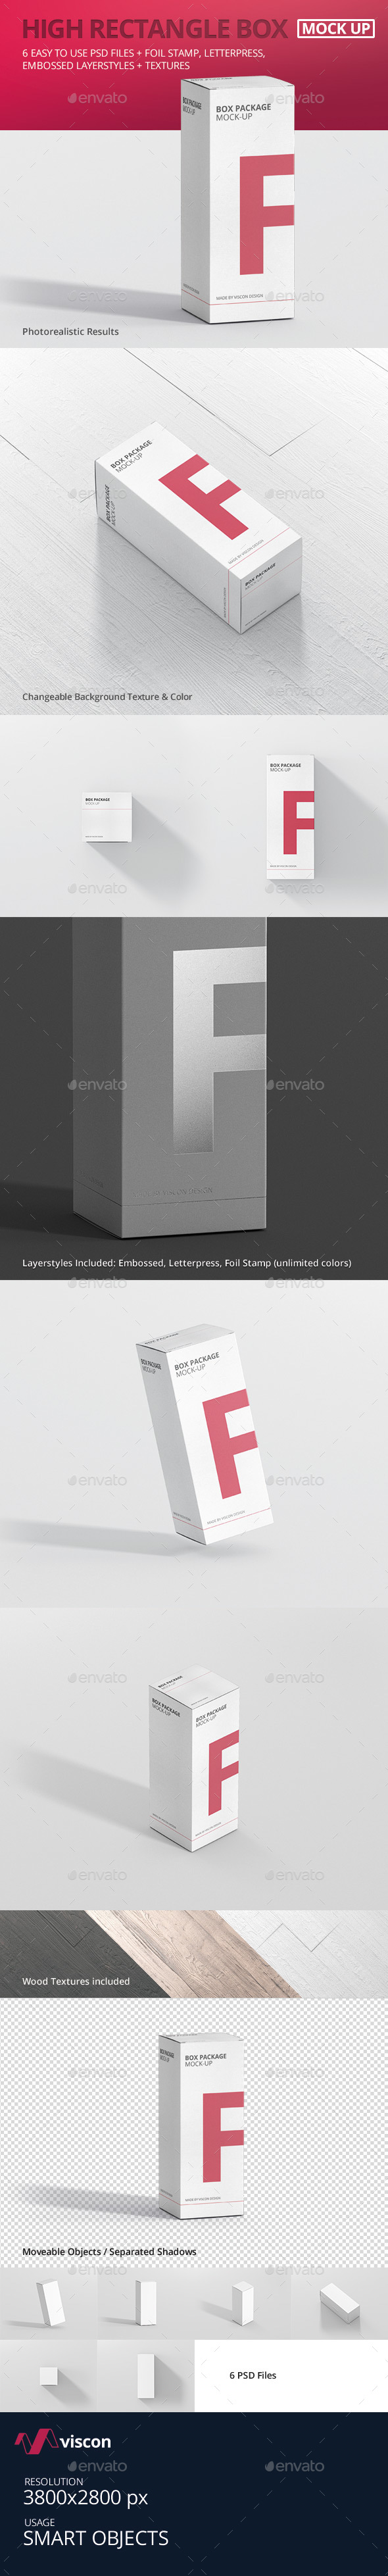 Package Box Mock-Up - High Rectangle